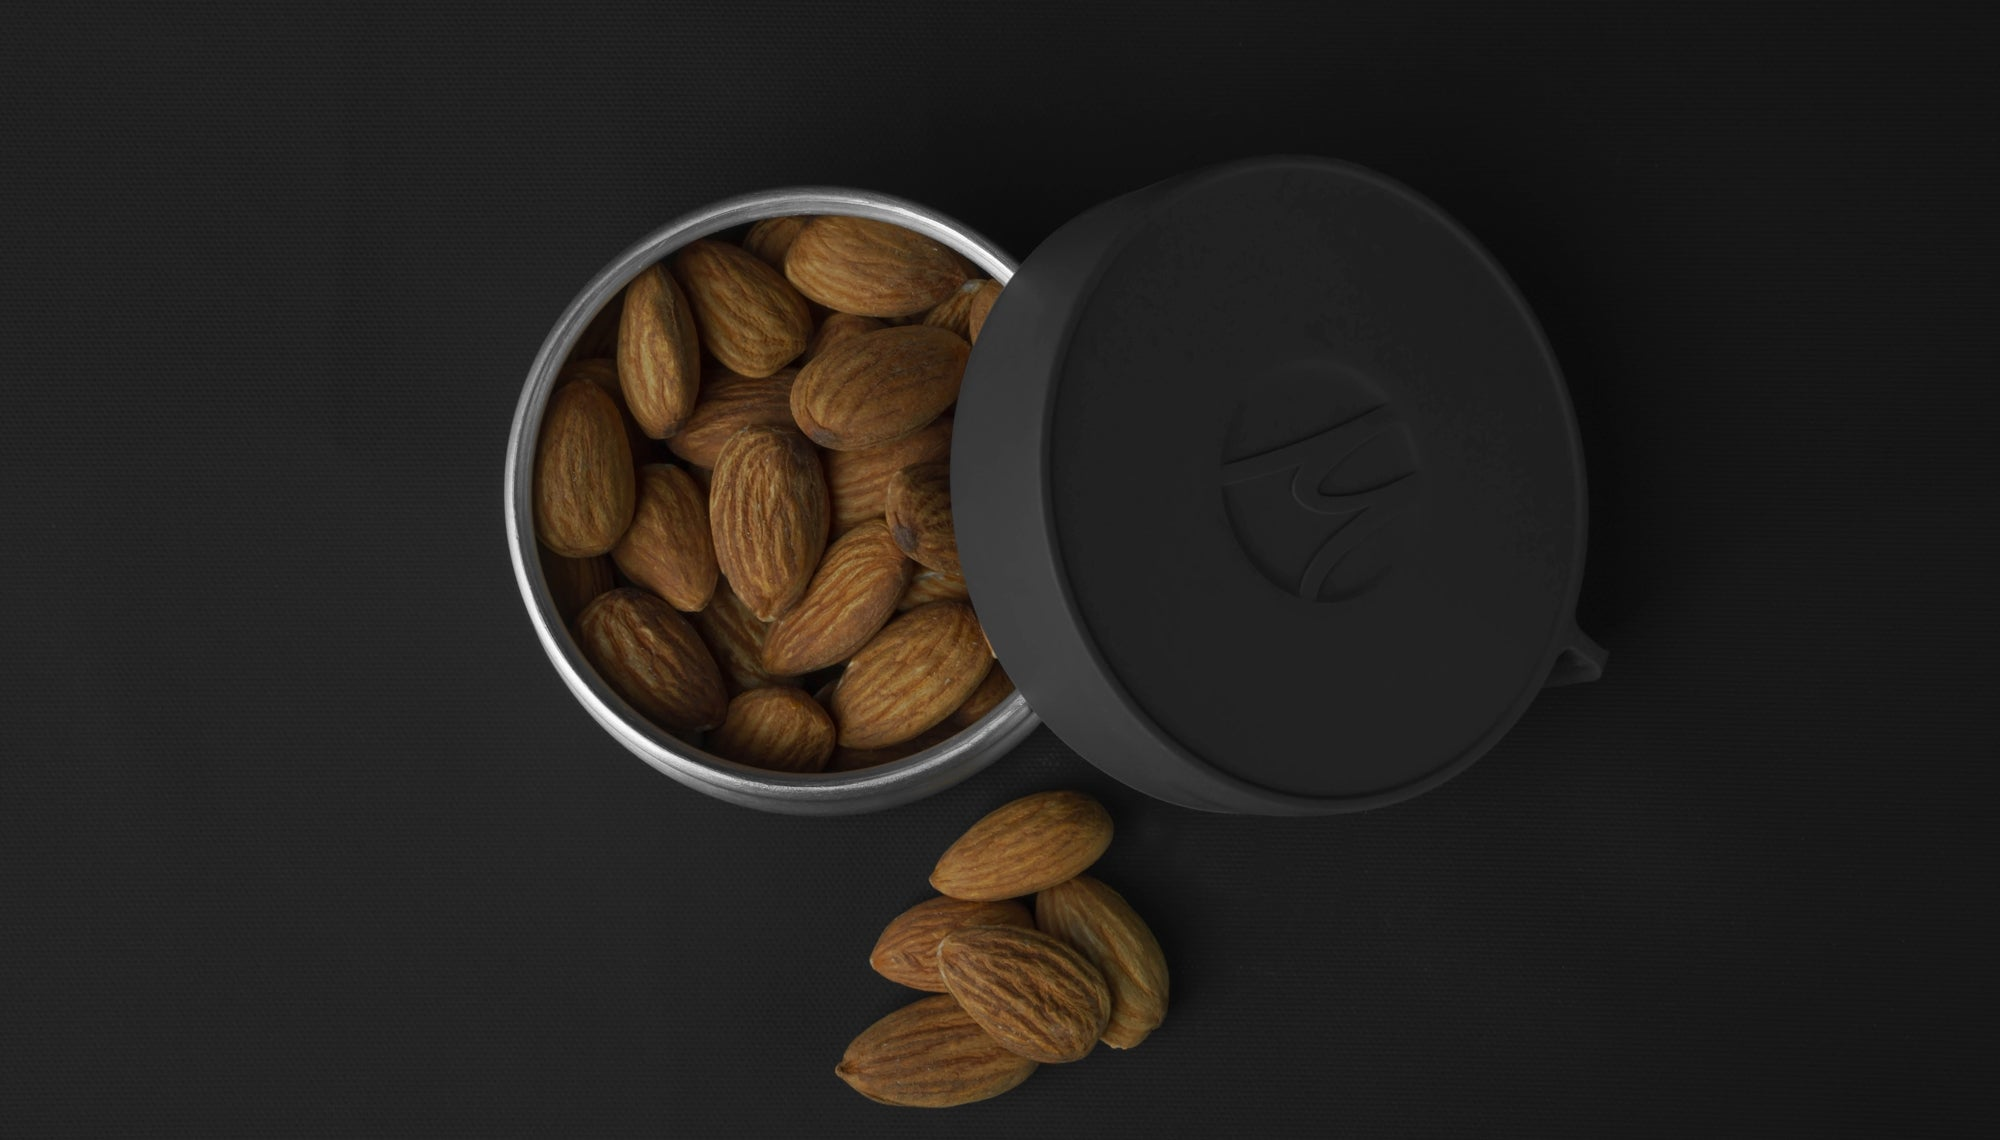 Top view of canister on black background filled with almonds